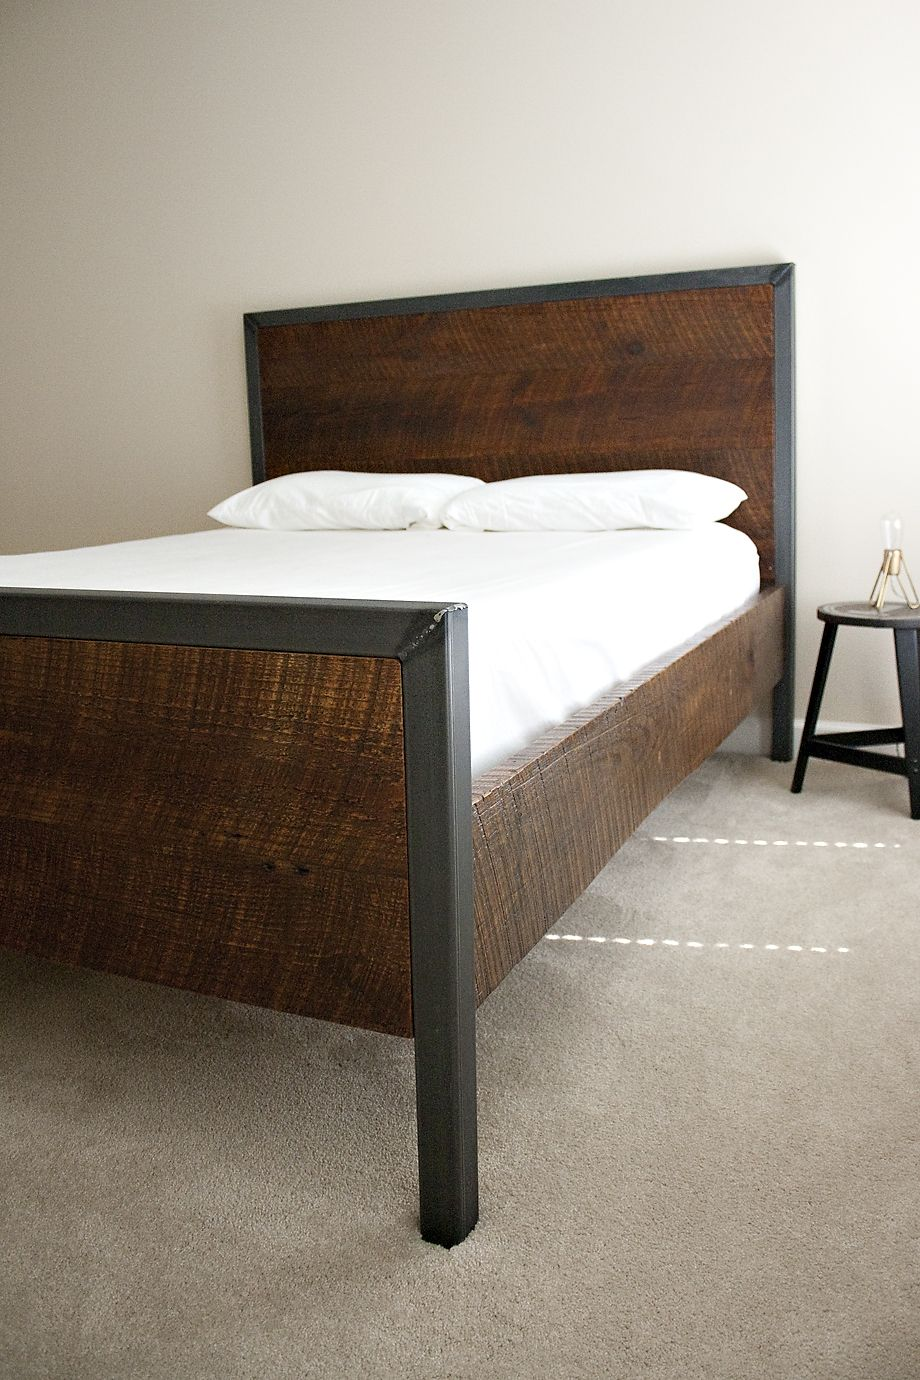 dylan_design_company_reclaimed_wood_bed3.jpg (920×1380) | make it ...